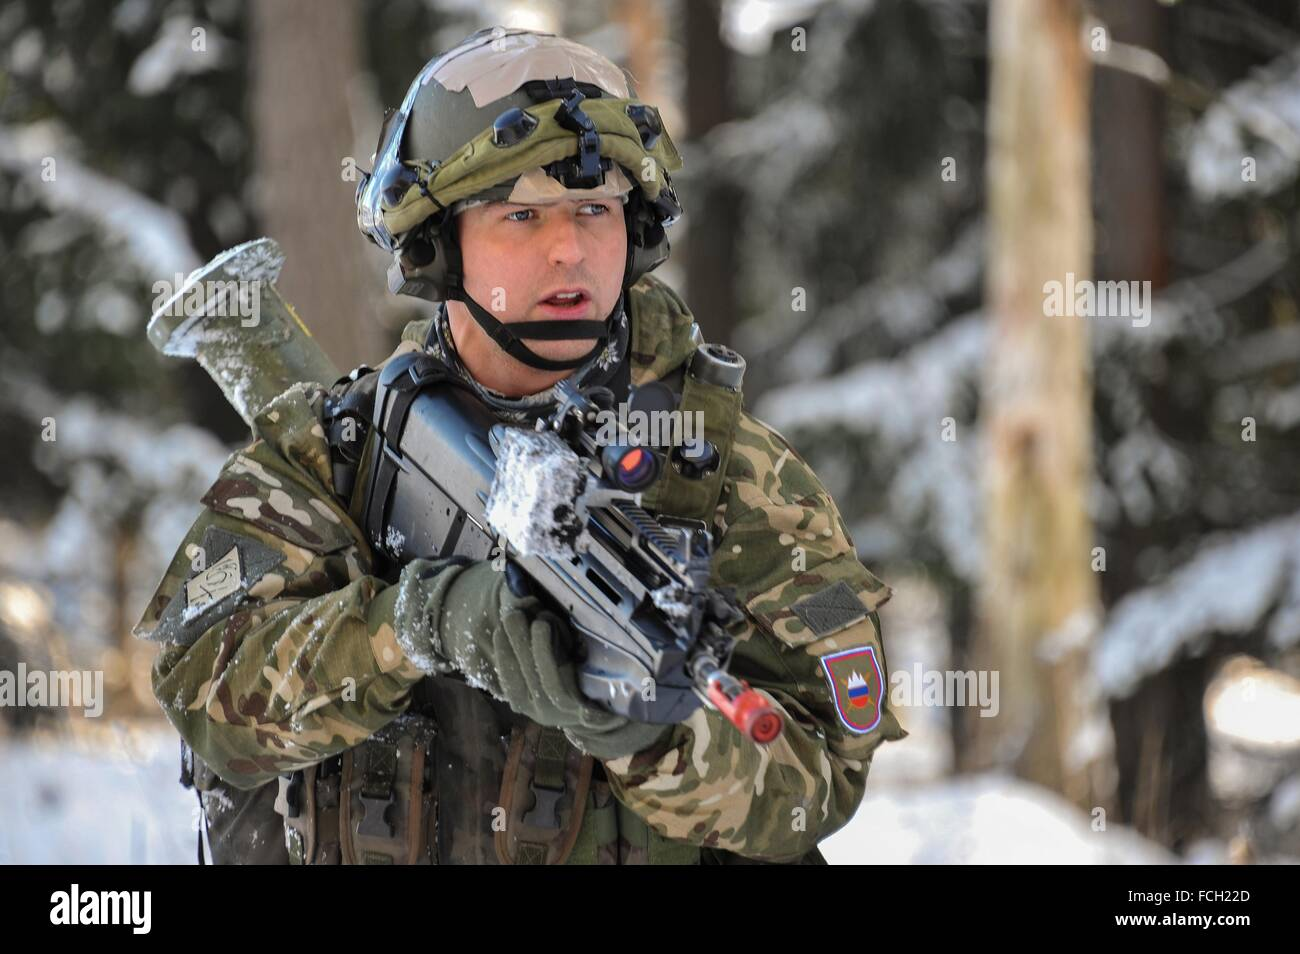 Hohenfels Army base, Germany. 21st January, 2016. A Slovenian soldier with the 3rd Company, 10th Regiment reacts - Stock Image